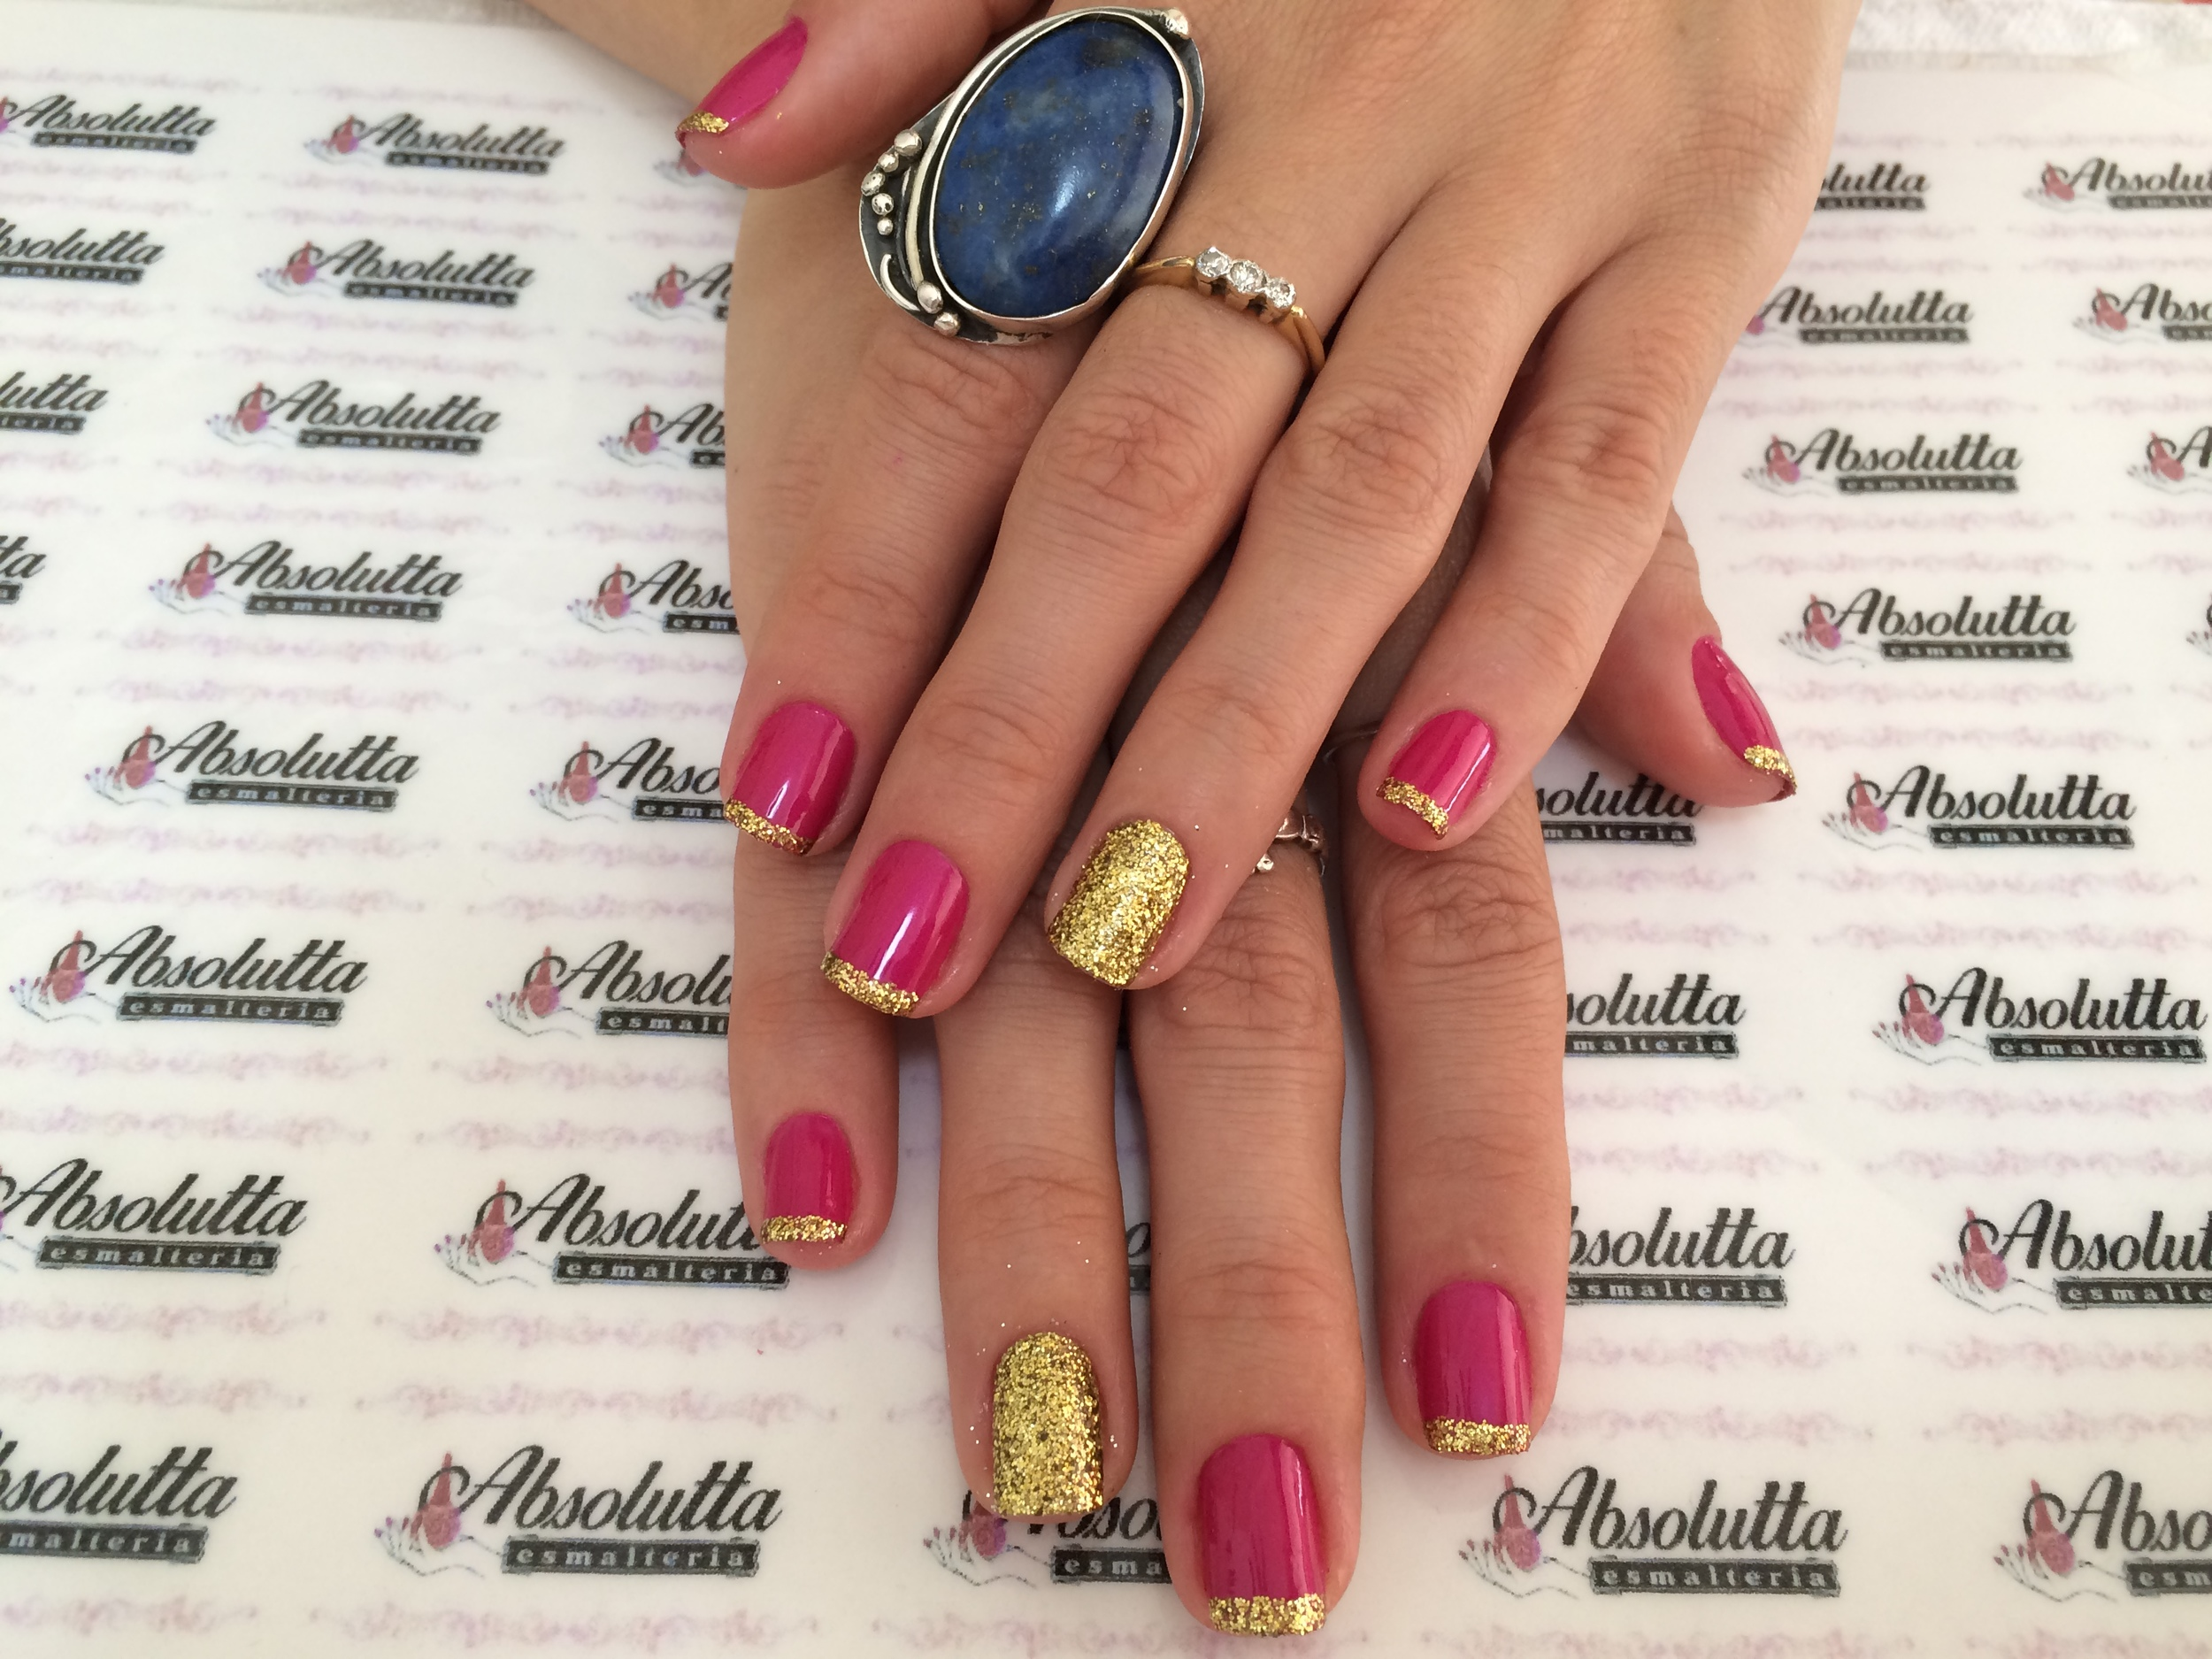 Nail art by Absolutta Esmalteria in Socorro, SP Brazil.